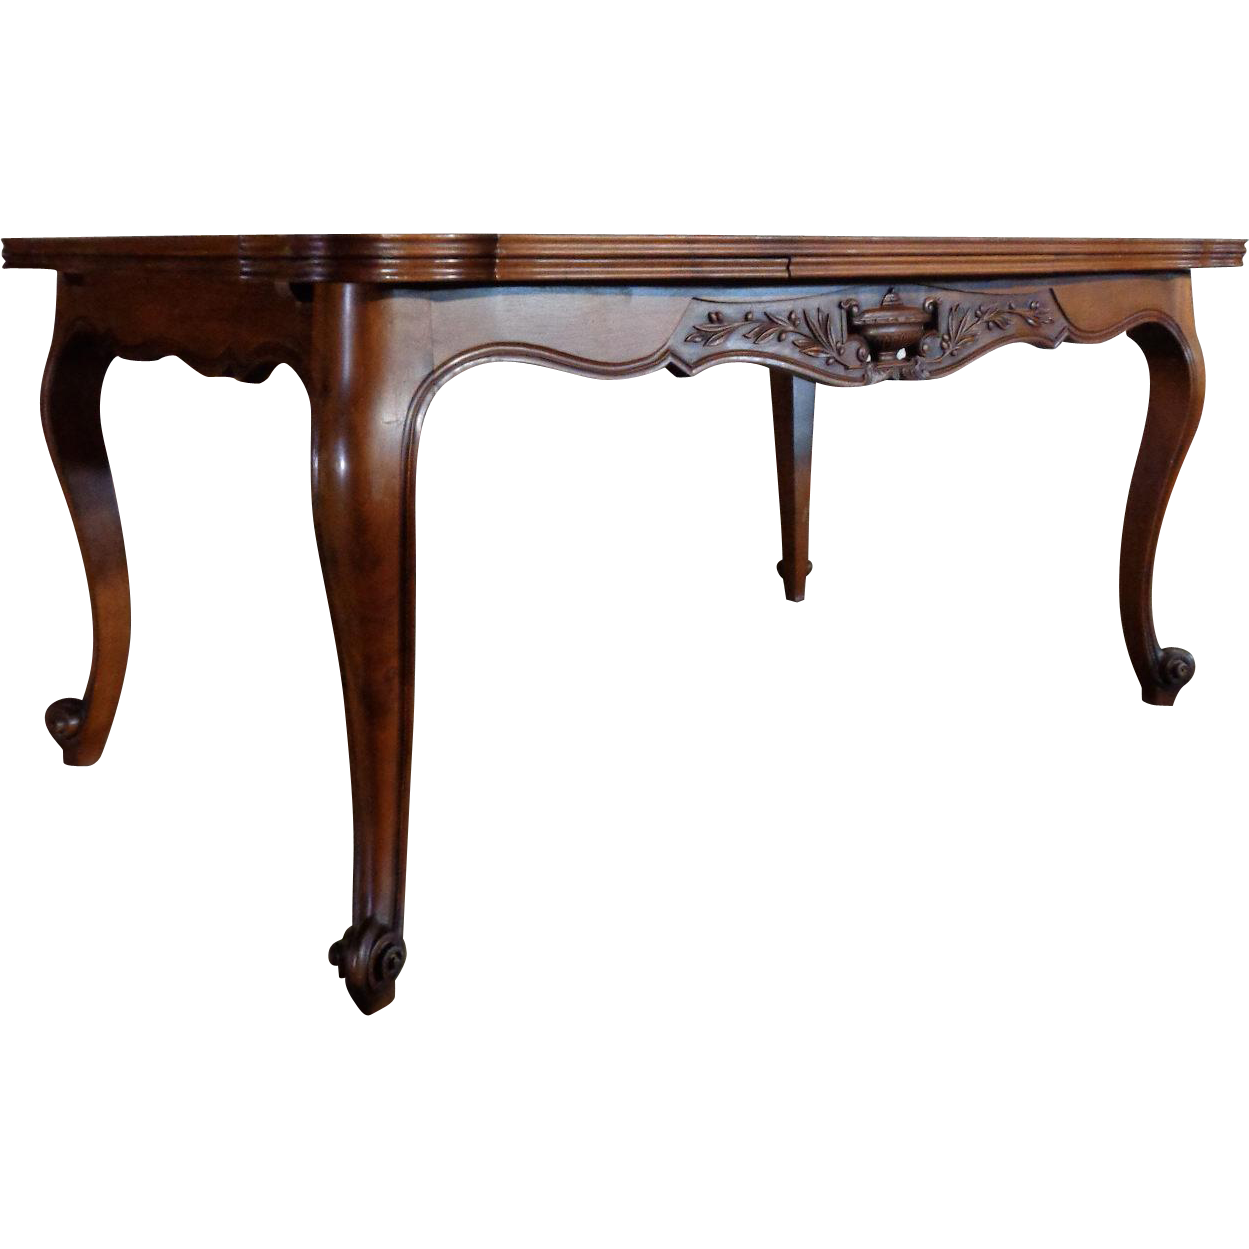 Louis xv dining table - Antique Country French Louis Xv Style Walnut Provencal Dining Table